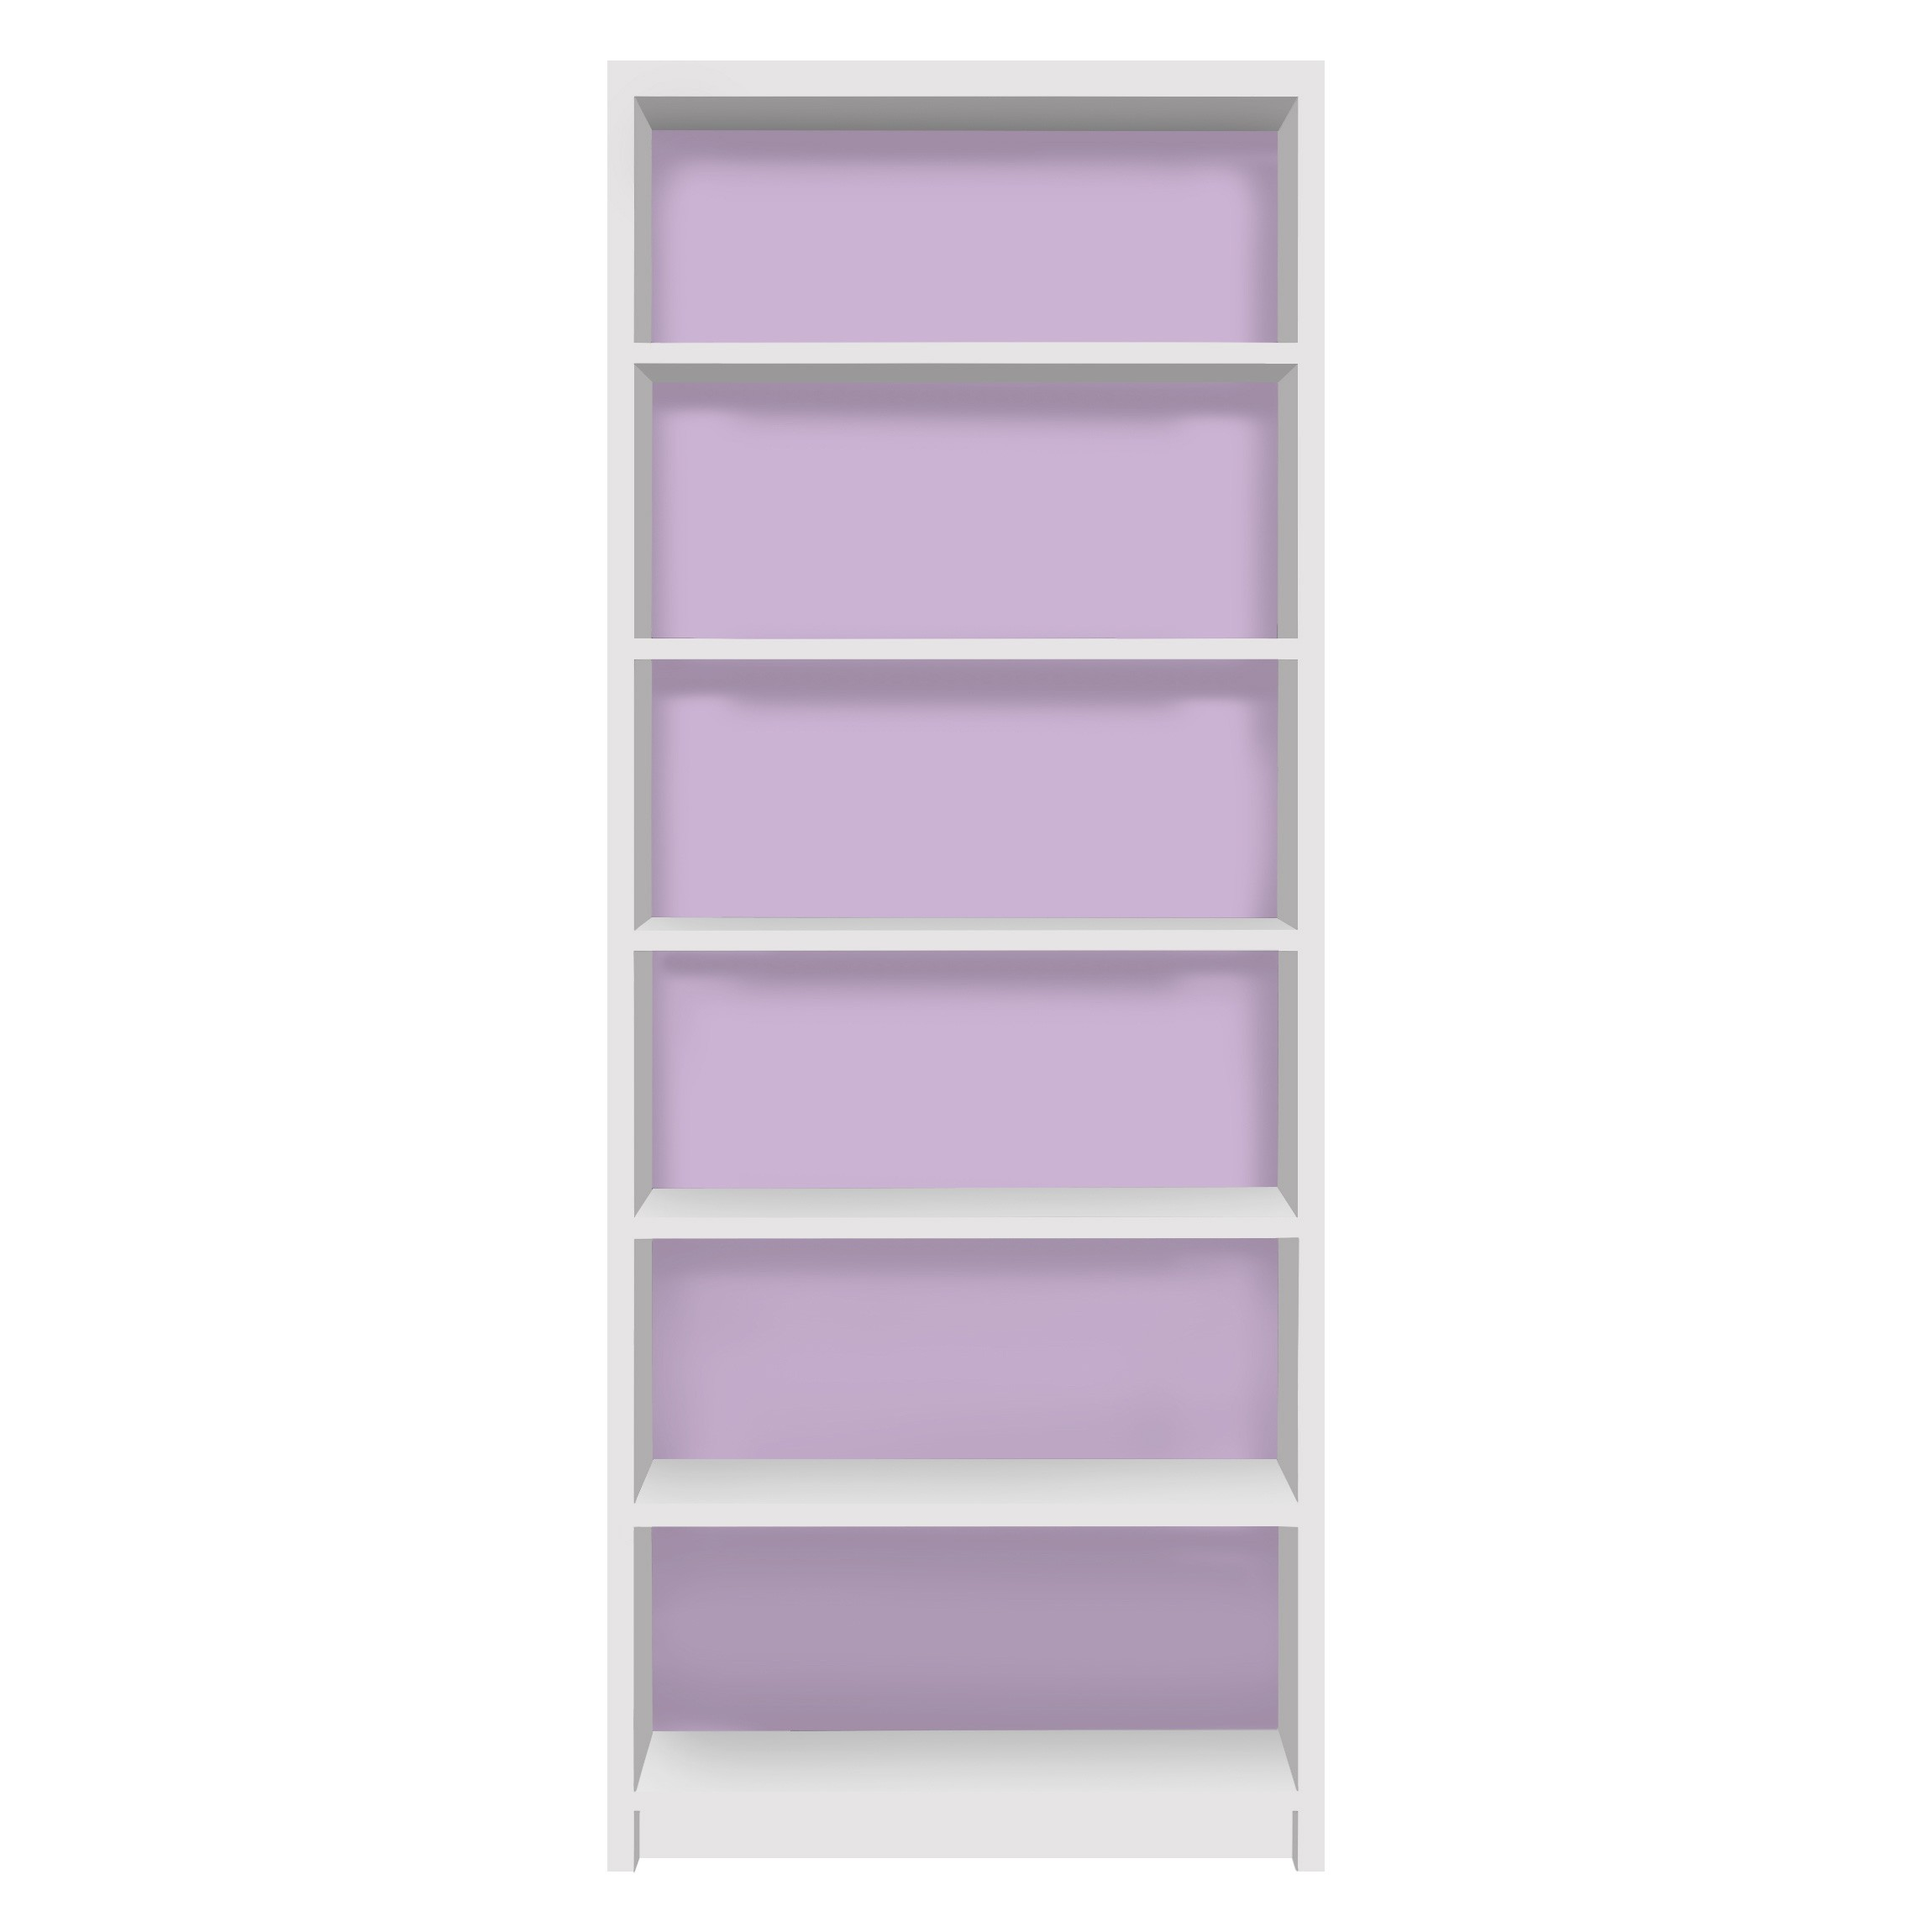 m belfolie f r ikea billy regal klebefolie colour lavender. Black Bedroom Furniture Sets. Home Design Ideas